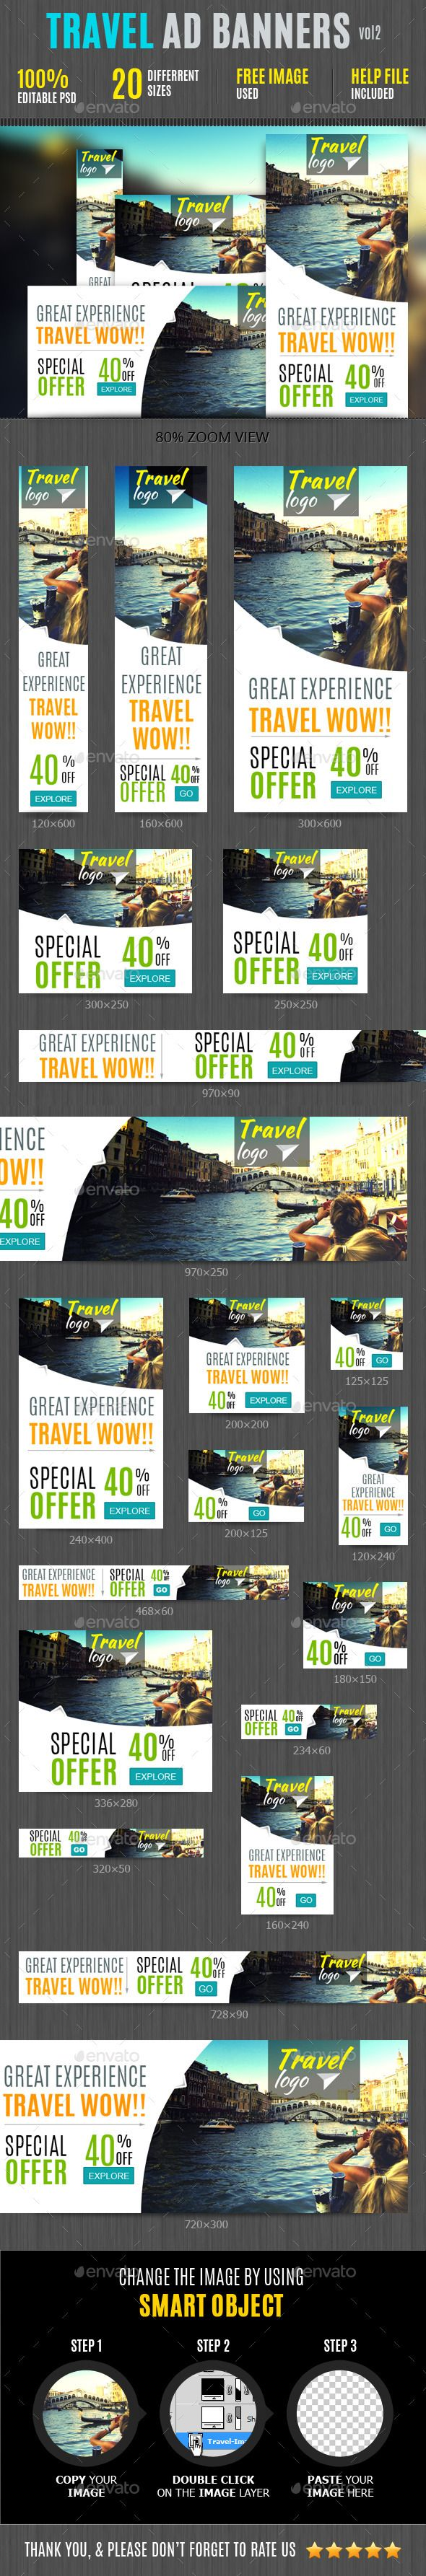 Travel Web Ad Marketing Web Banners Template PSD | Buy and Download: http://graphicriver.net/item/travel-web-ad-marketing-vol-2/9008690?WT.ac=category_thumb&WT.z_author=DoodleGraphix&ref=ksioks